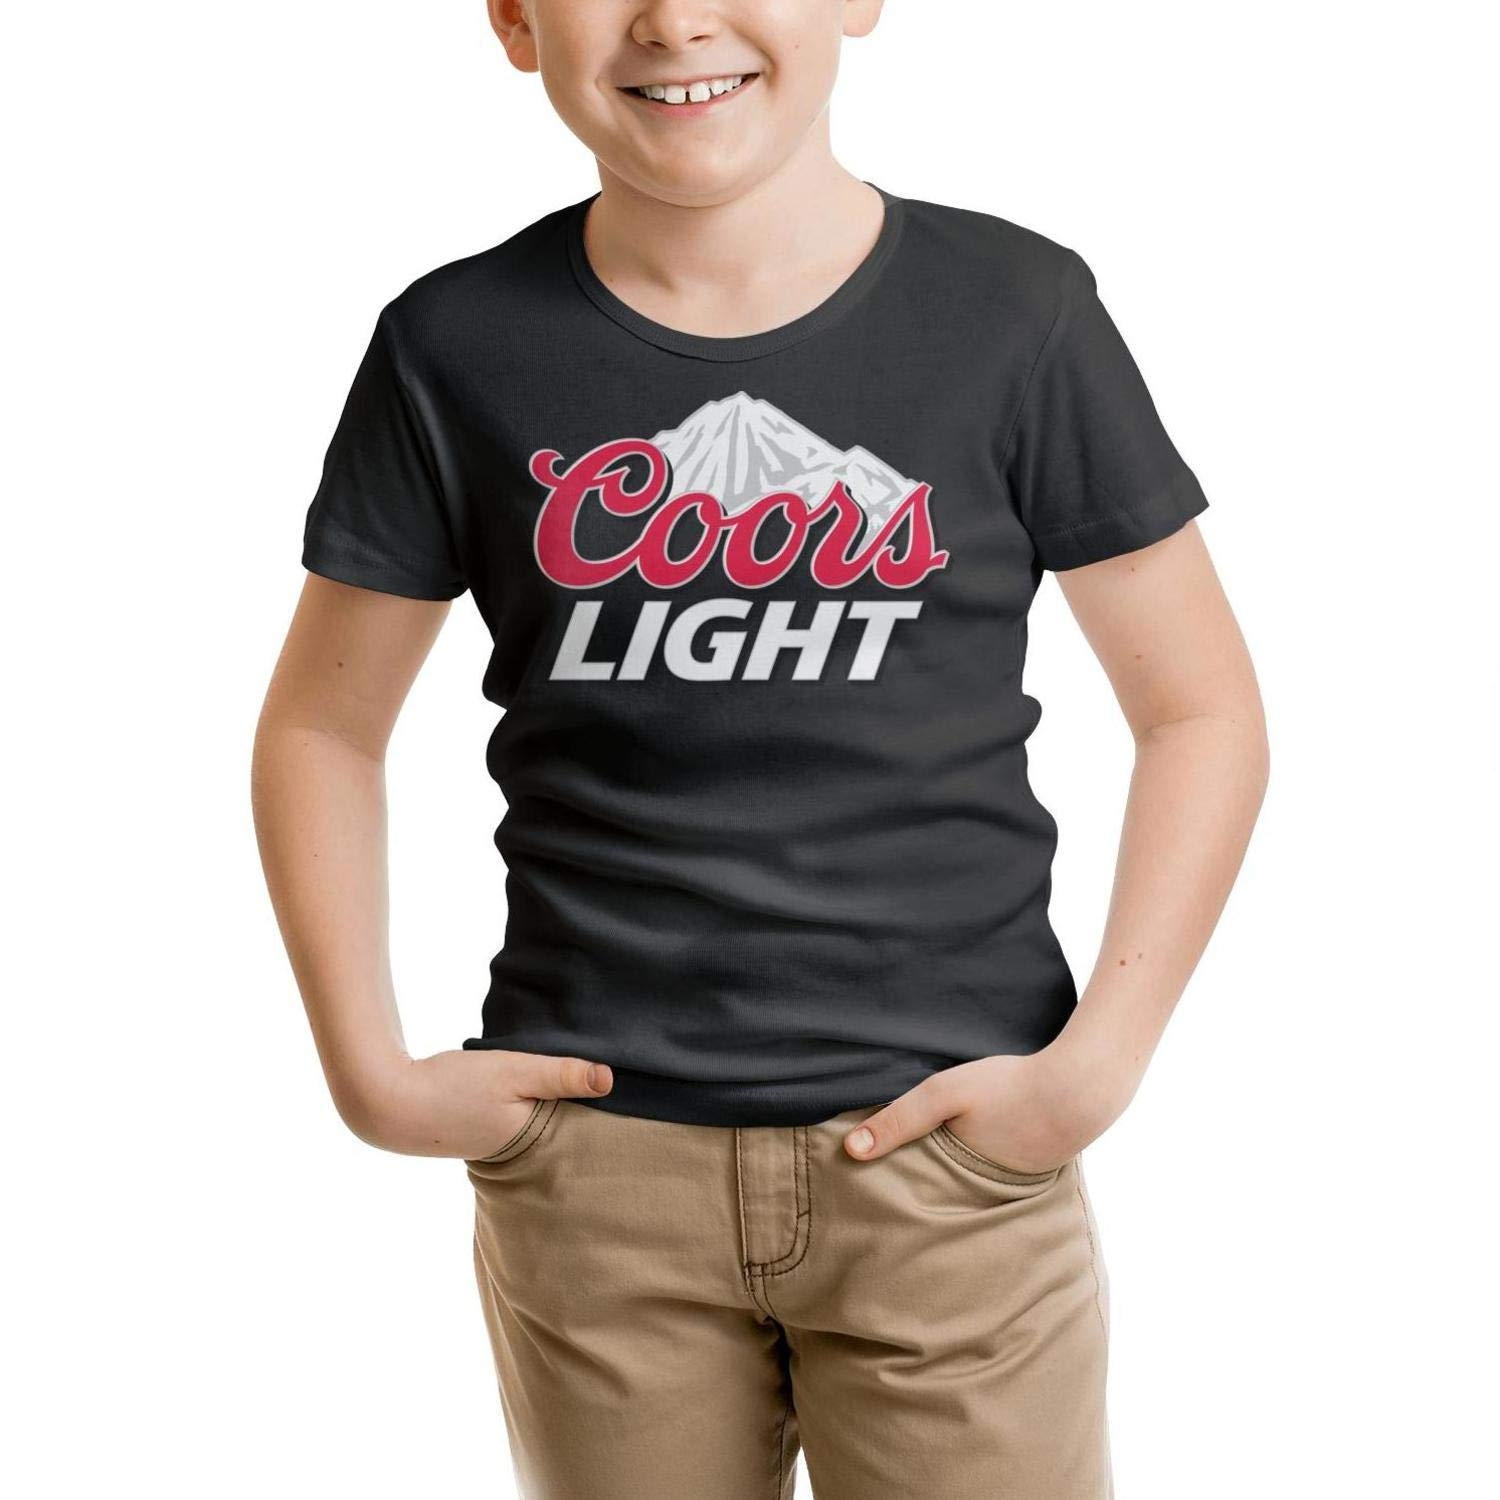 Kids Short-Sleeve Cotton coors-Light-Sign t-Shirt for 2-10Y